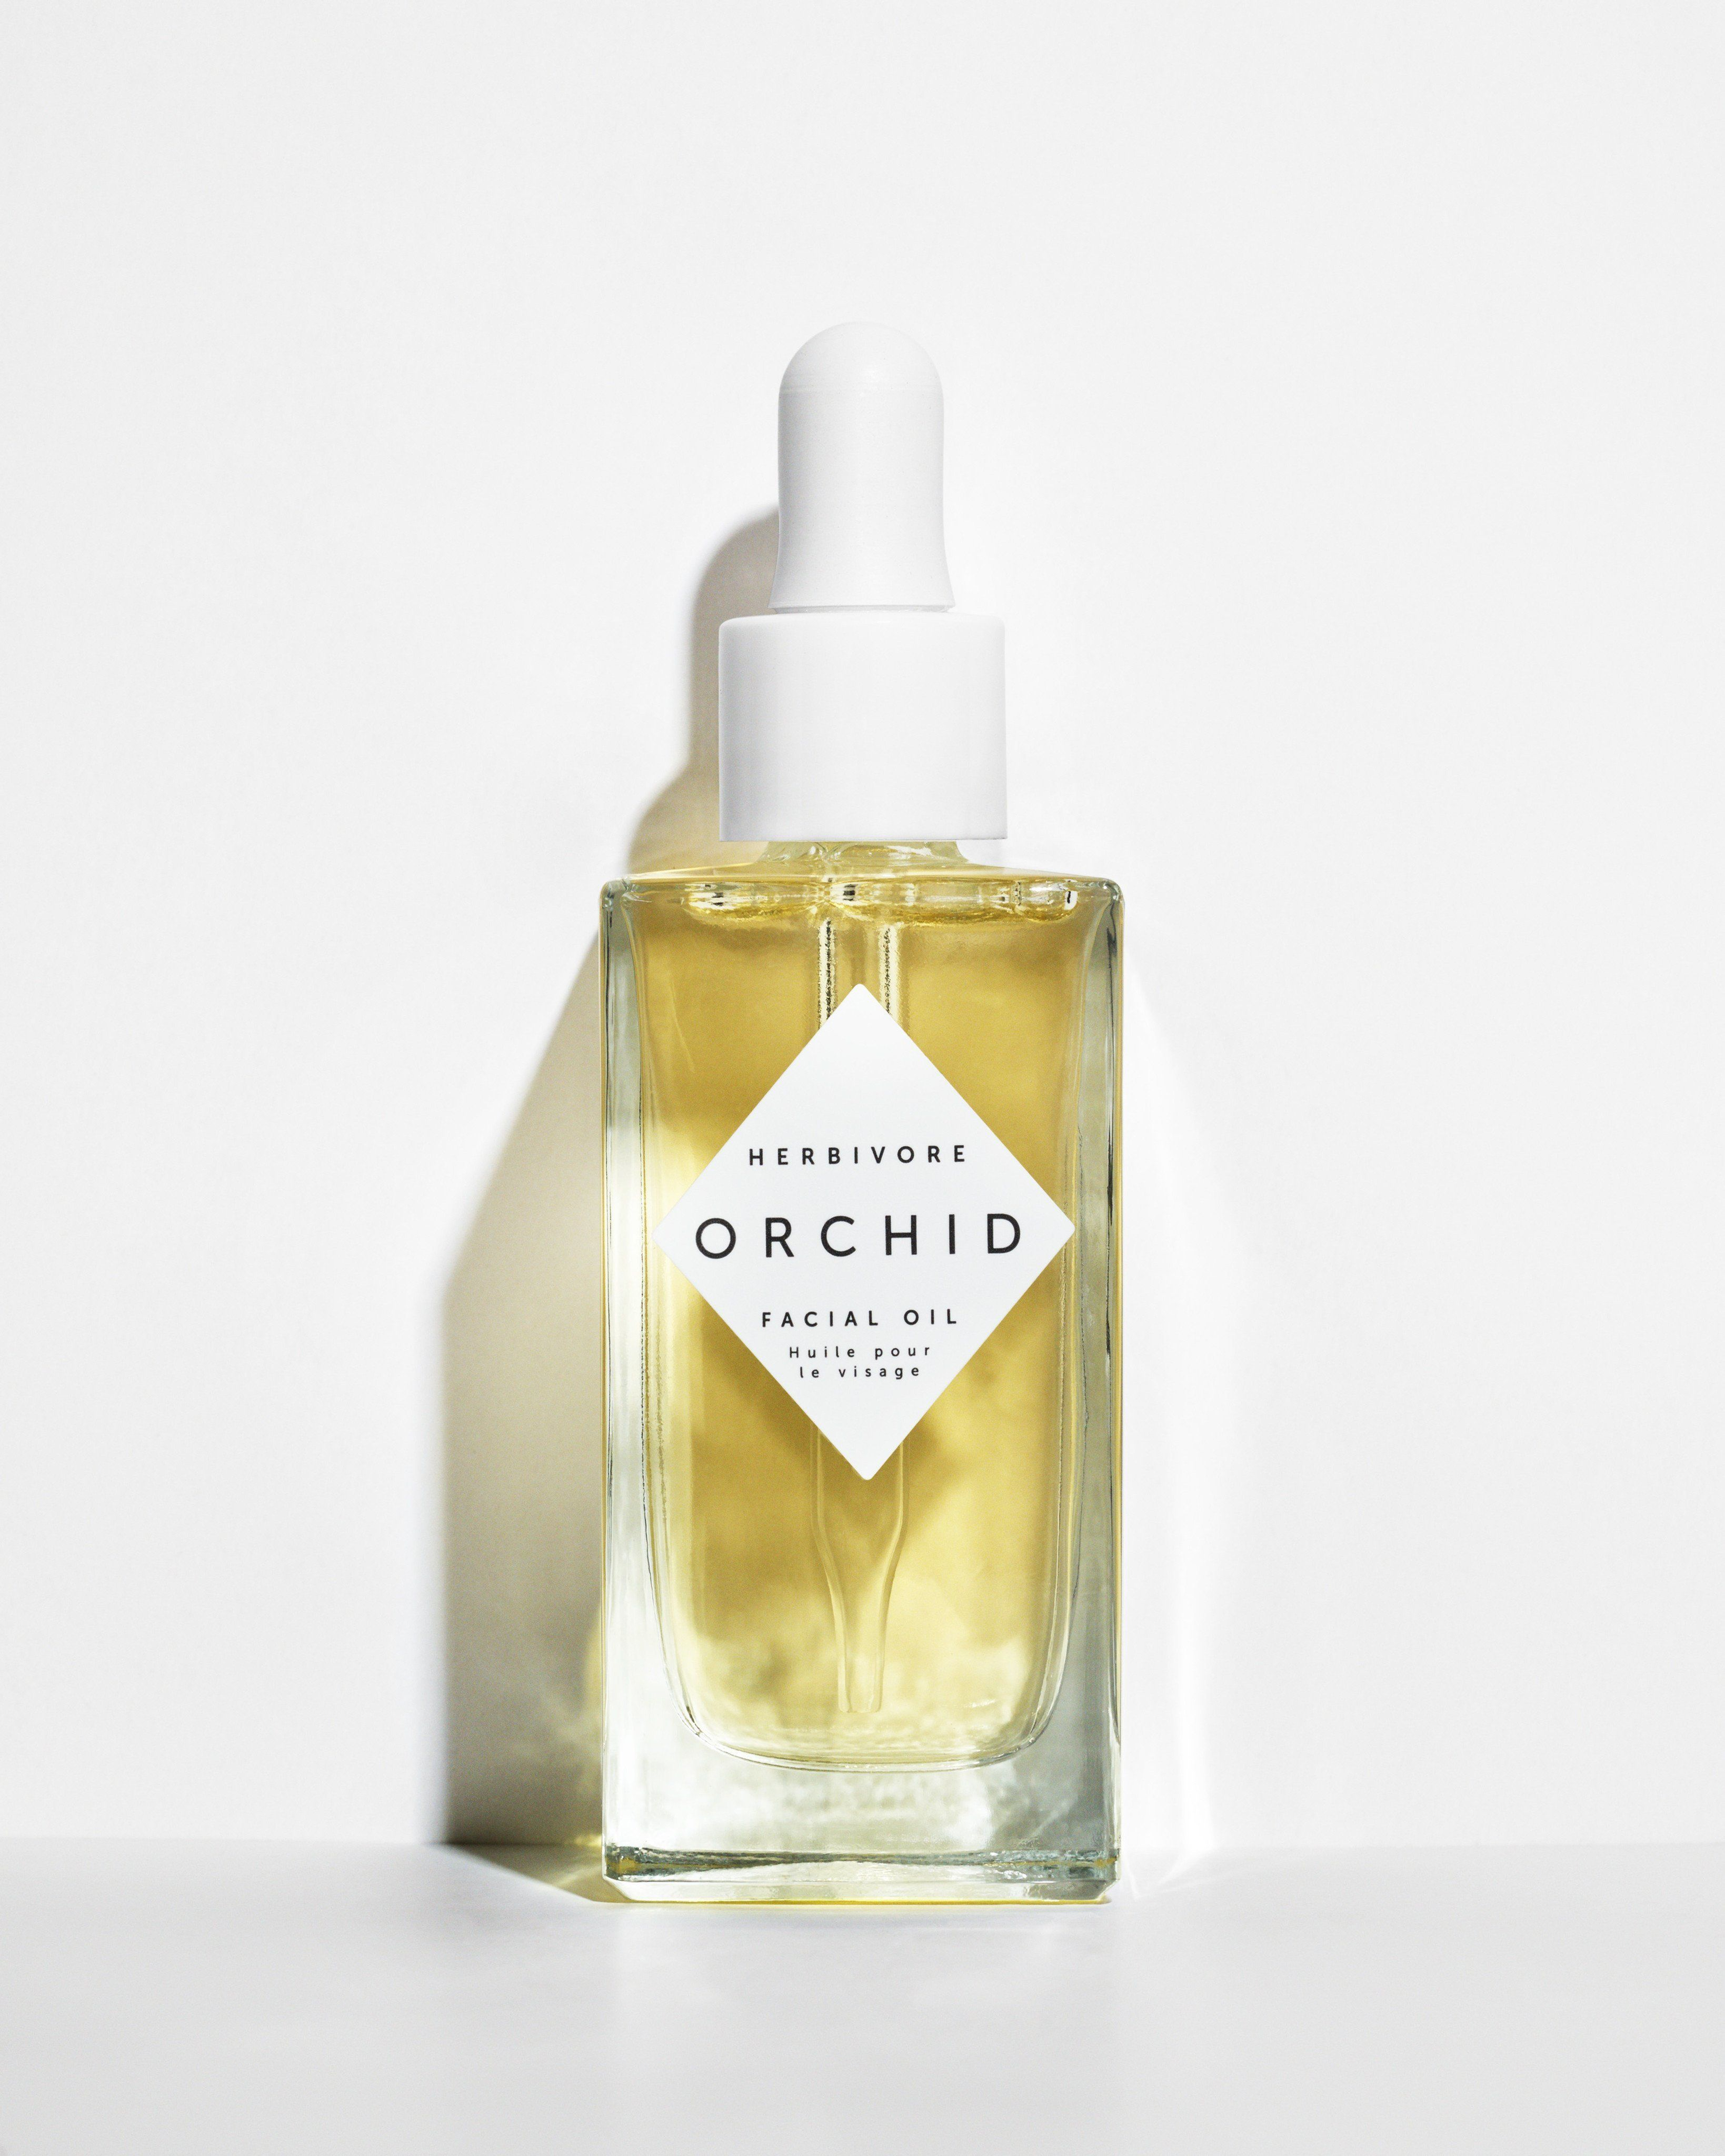 Imagine taking every delicious flower in the world and squeezing it into a bottle. That's how perfect this facial oil smells.